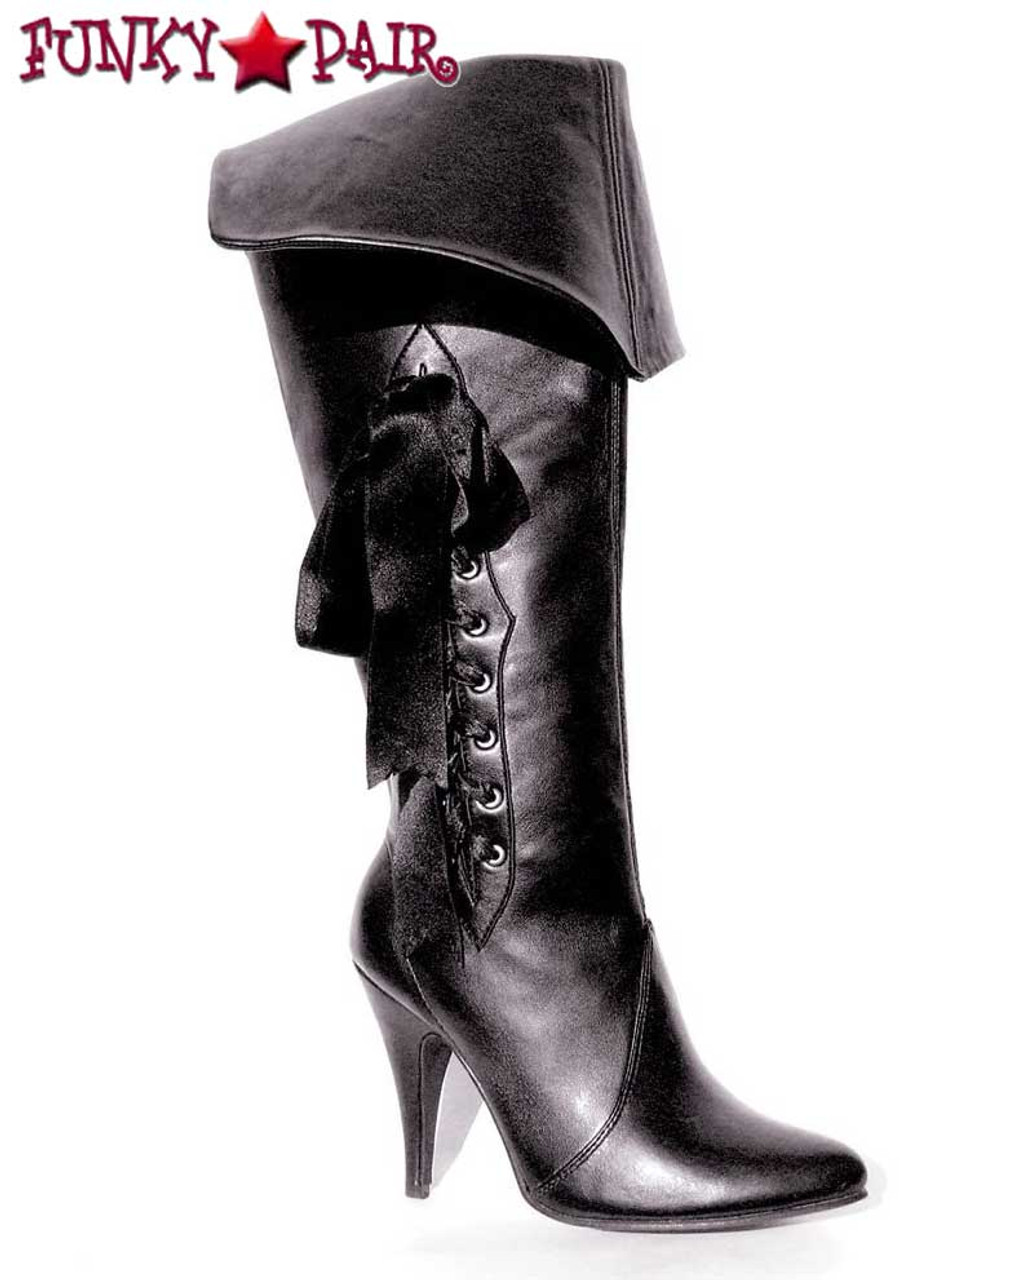 Ellie Shoes Womens 418 Pirate Boot